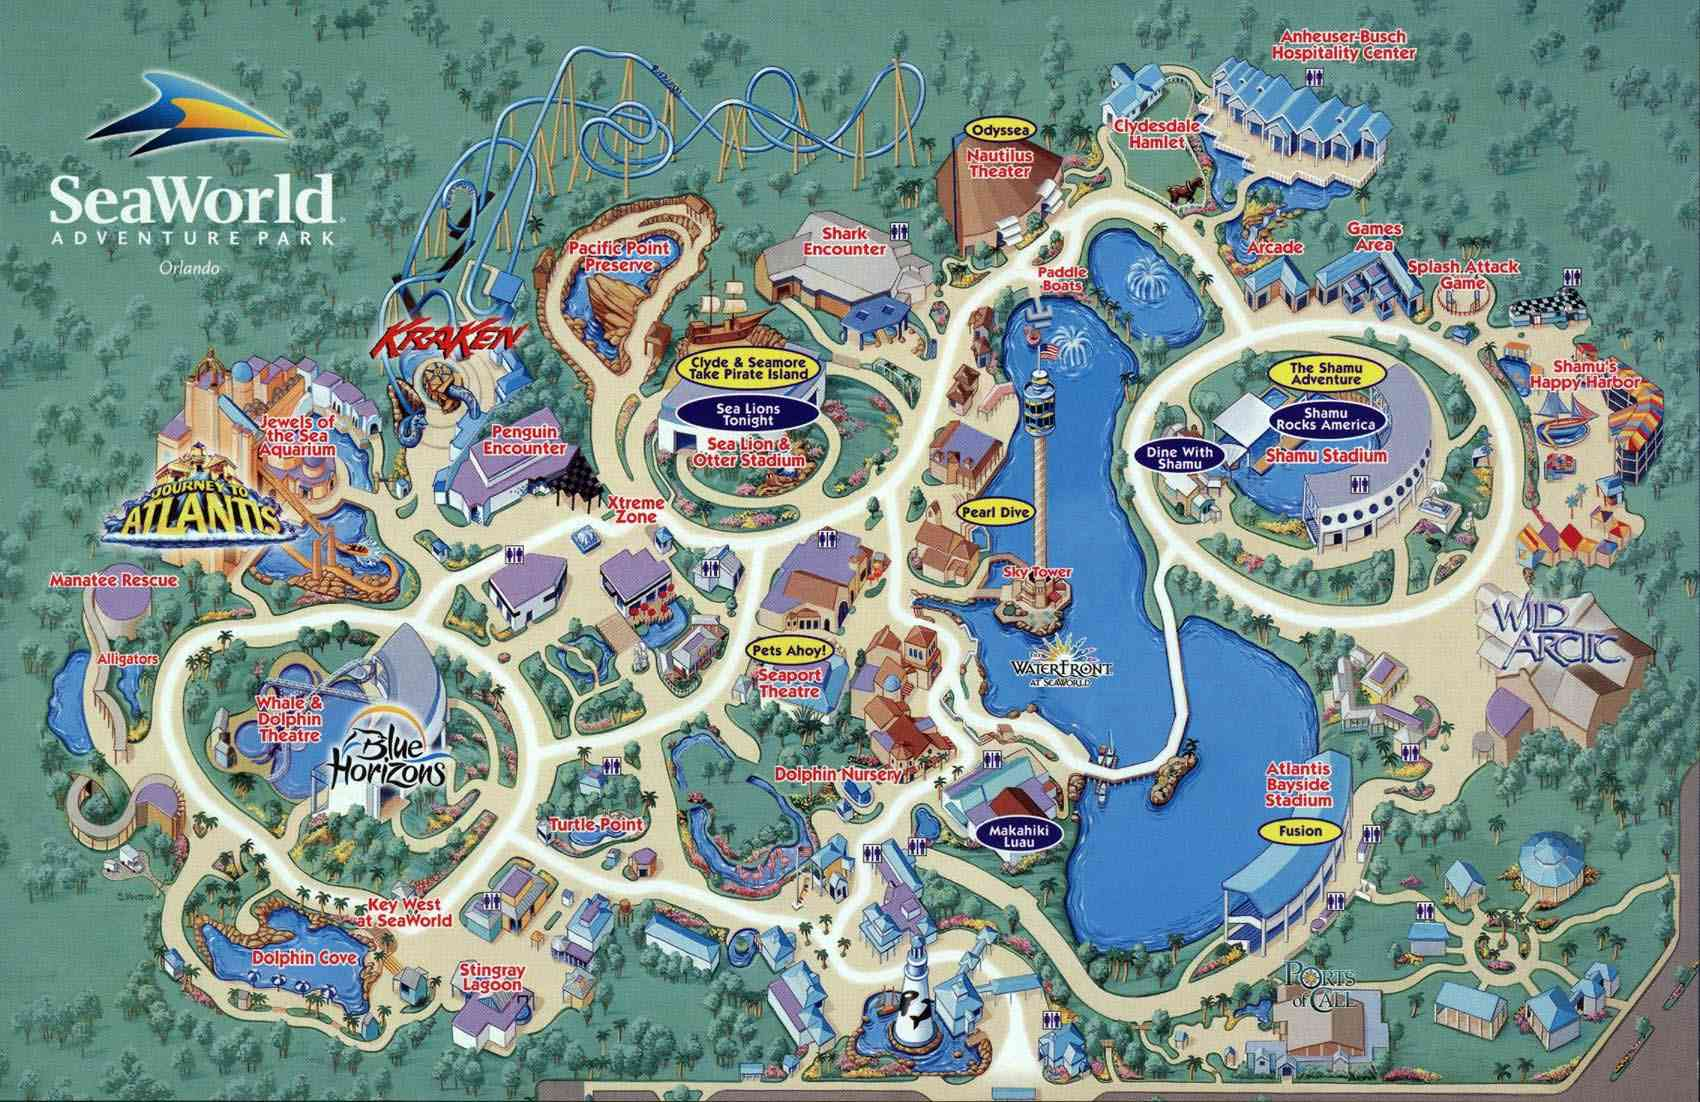 Seaworld map pdf seaworld usa states map collections seaworld map pdf with t4857 mappa dei parchi a tema in florida on aquatica together with gumiabroncs Images